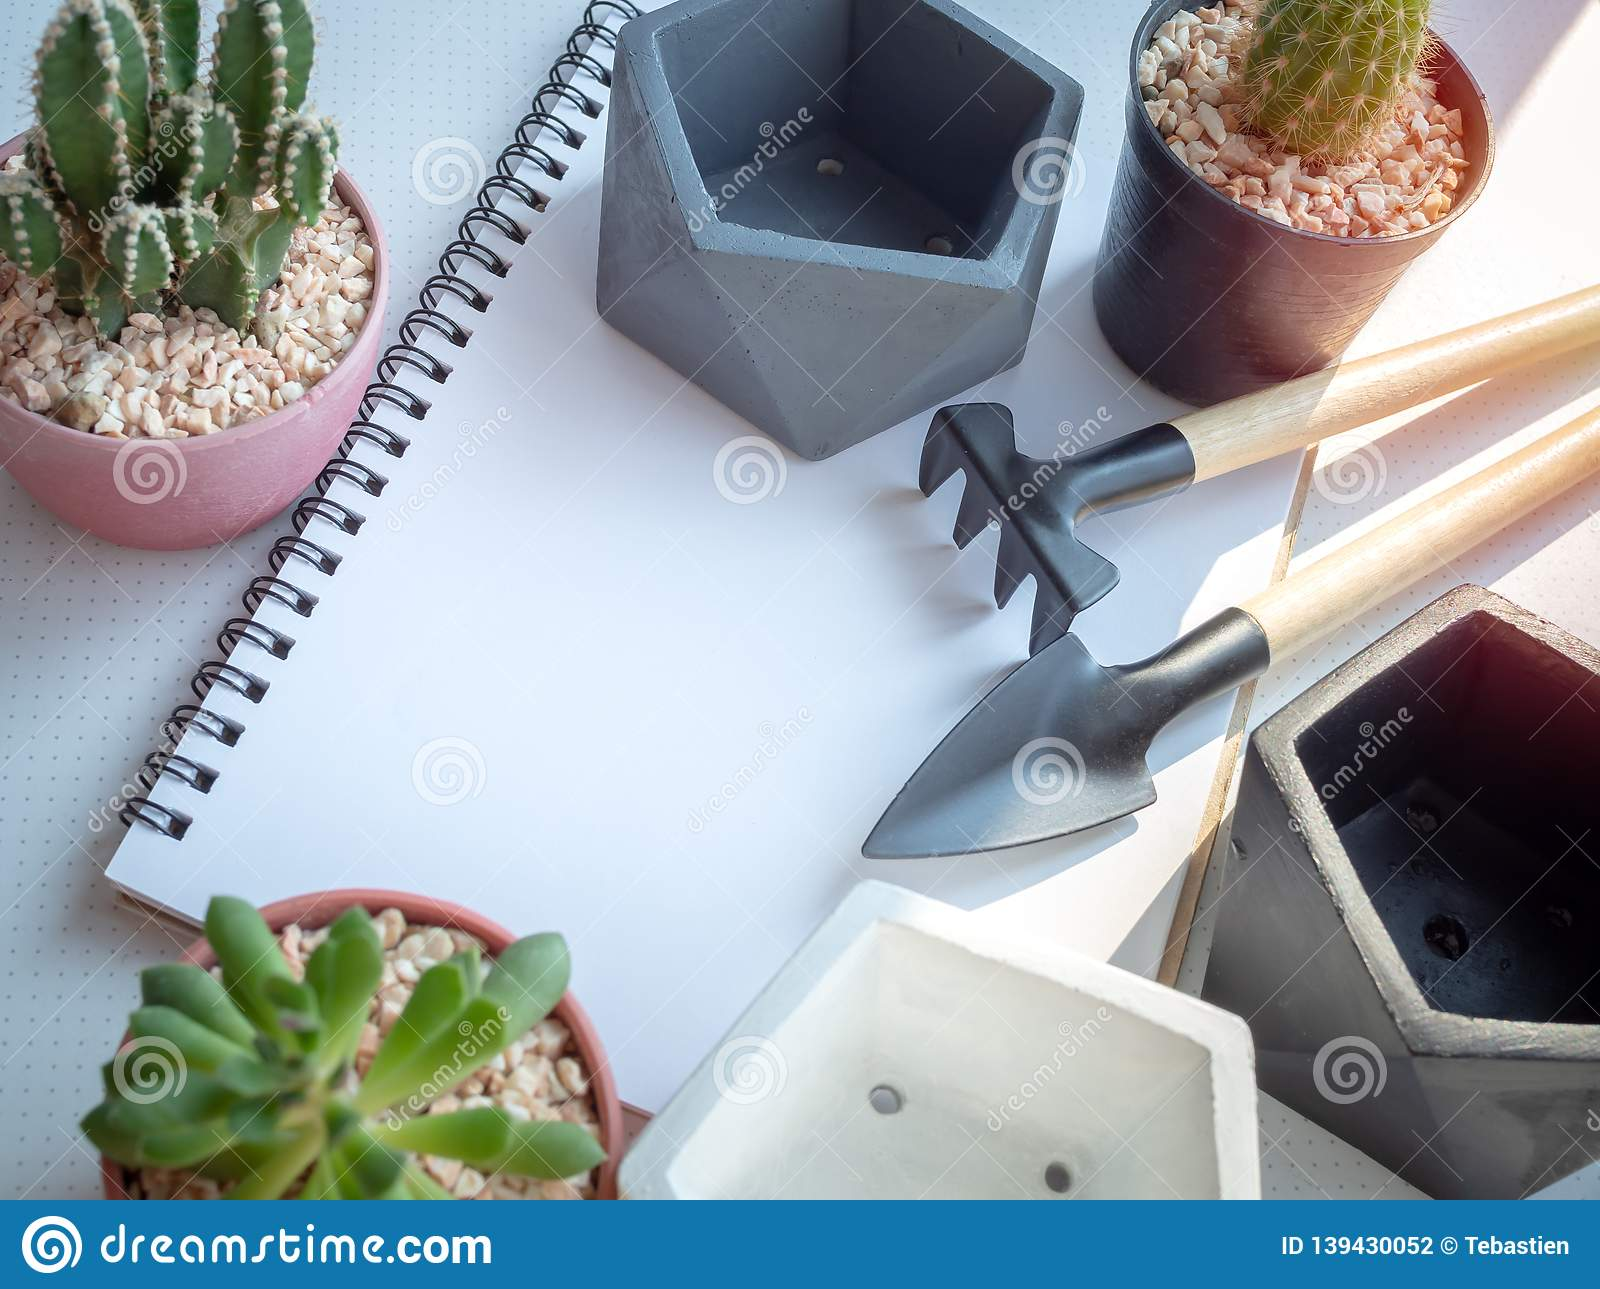 Blank Space On White Notebook With Cactus Plants Concrete Planters And Garden Tool Set On White Background Stock Photo Image Of Blank Minimalist 139430052